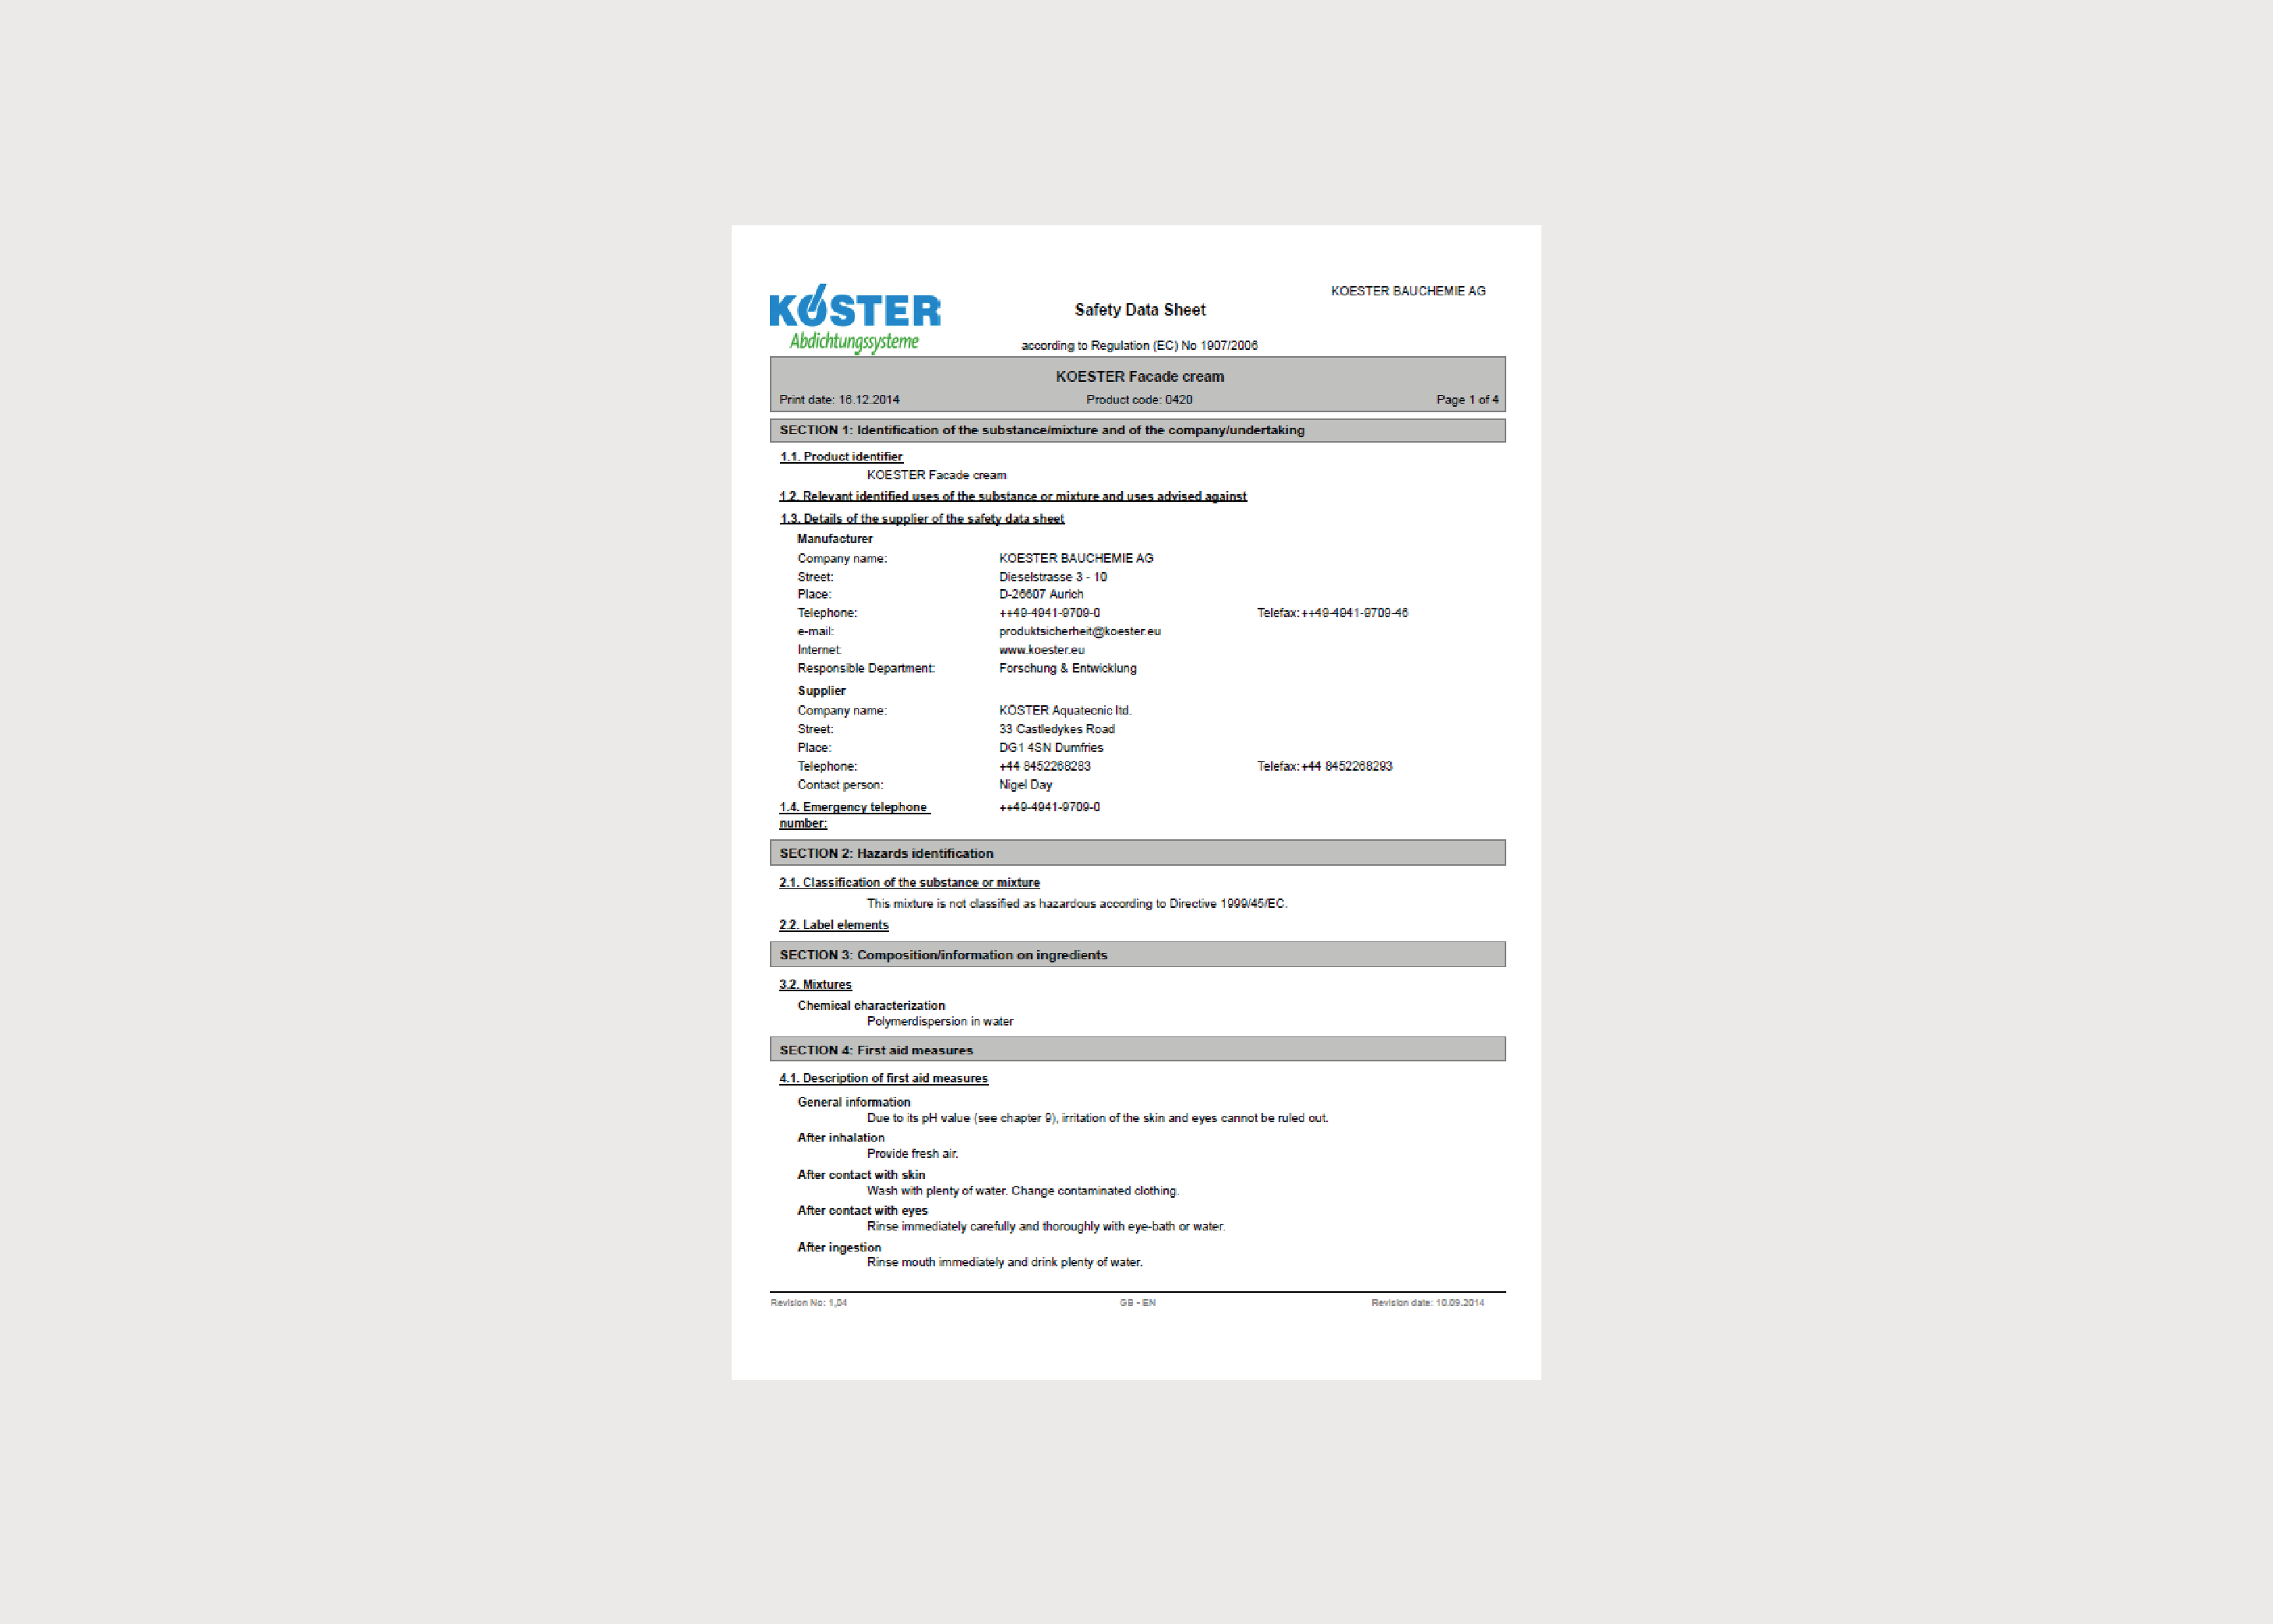 Koster Facade Protection and Paints MSDS